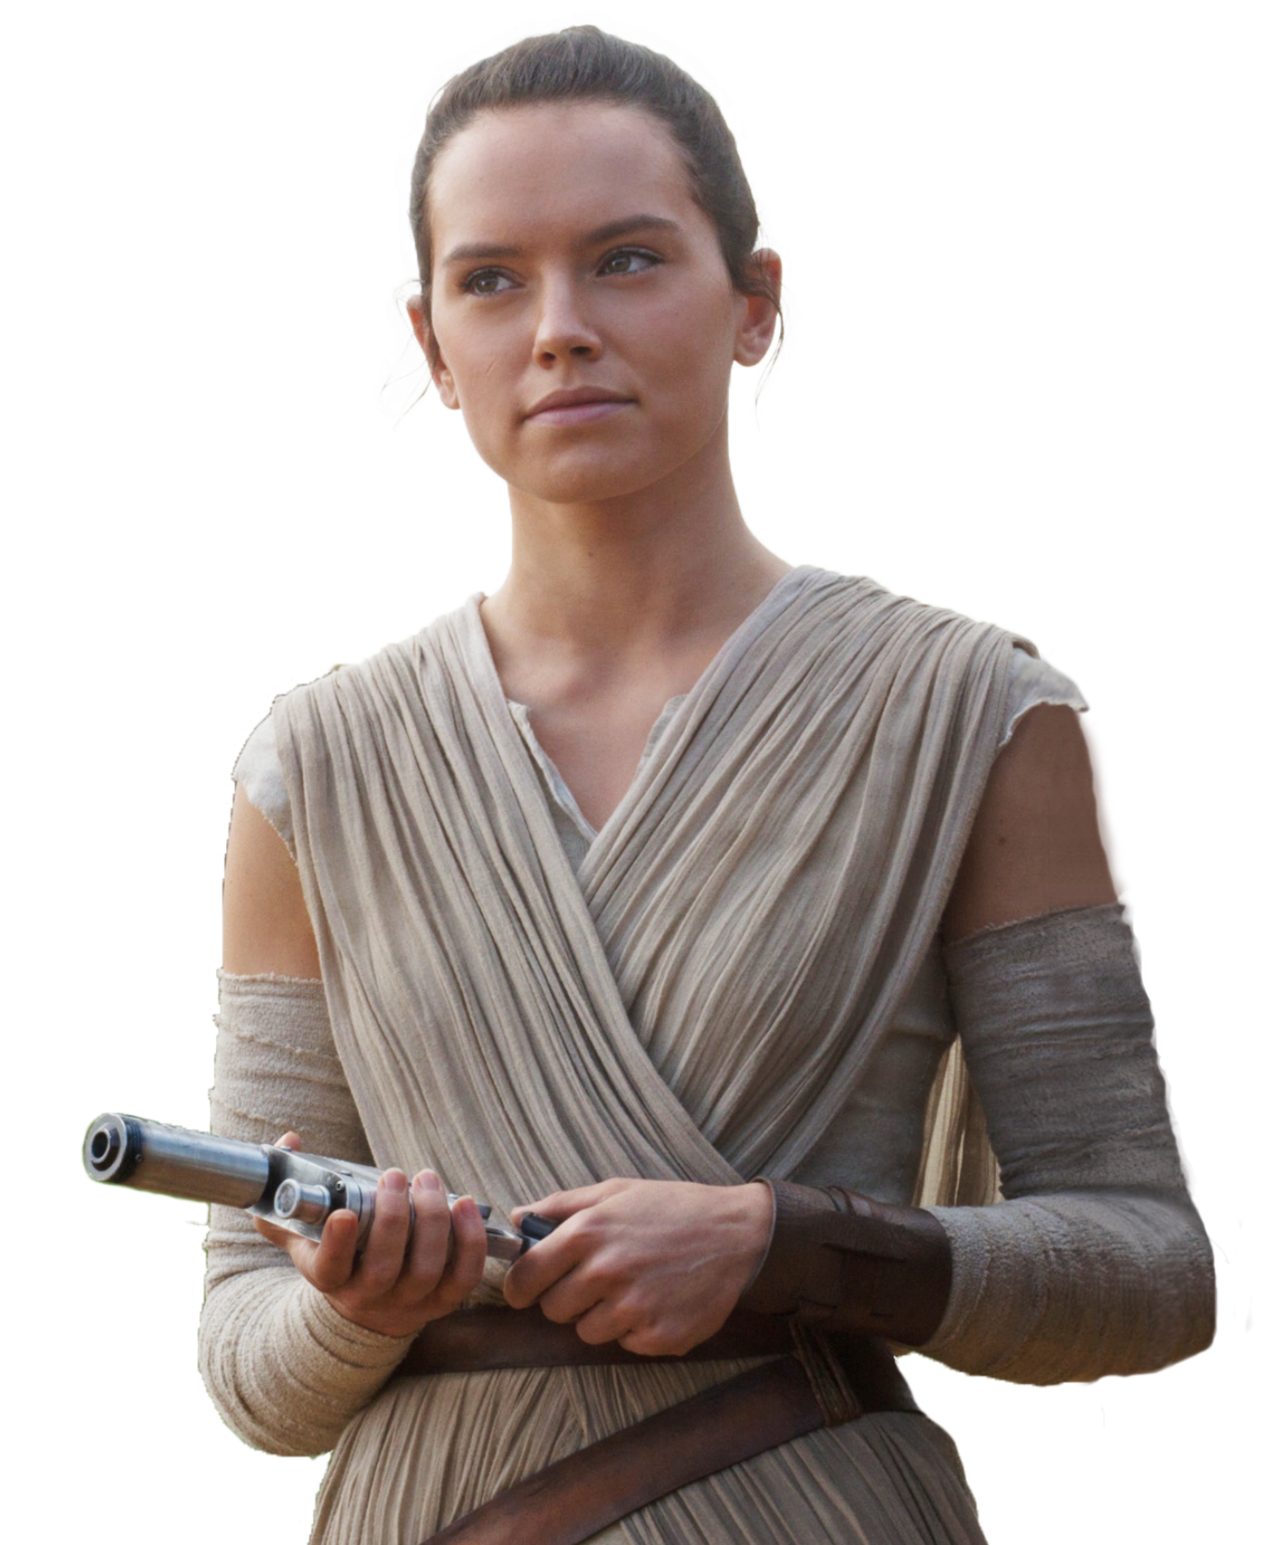 Rey star wars png transparent. For all your needs